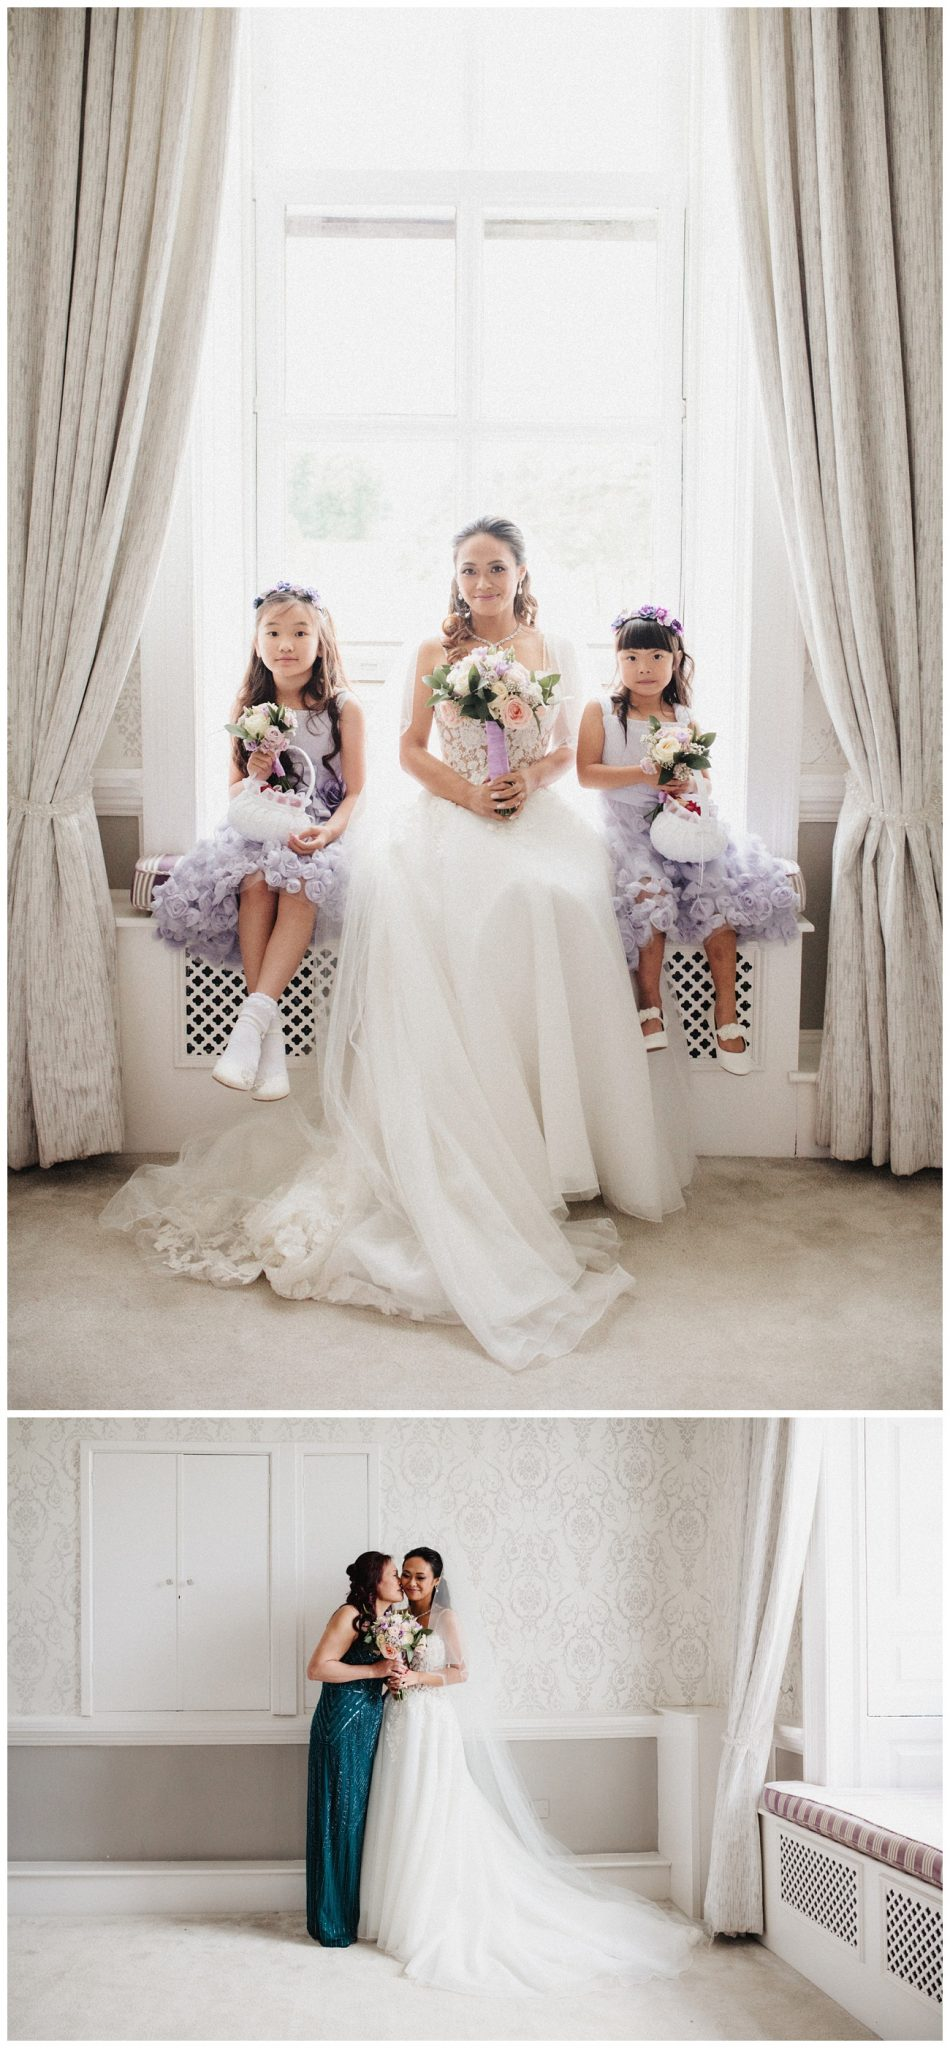 The bride posing with her mum and the 2 flower girls in the bridal suite